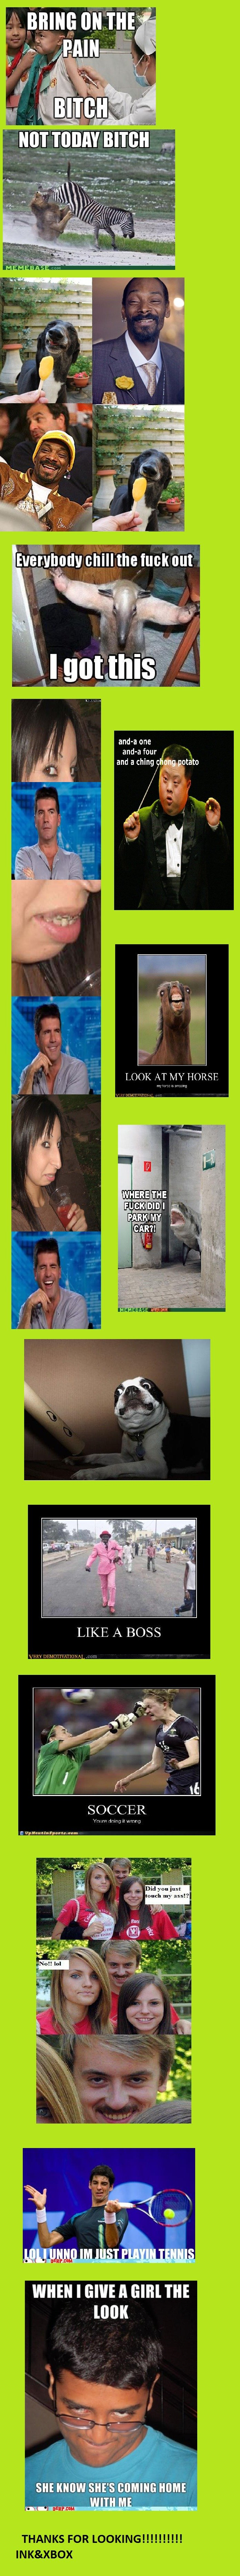 FUNNY PICTURES!. Just a few of my fav funny pictures!. andia four and a ching WHEN I GIVE ll (SIM m THANKS FOR INK& XBOX